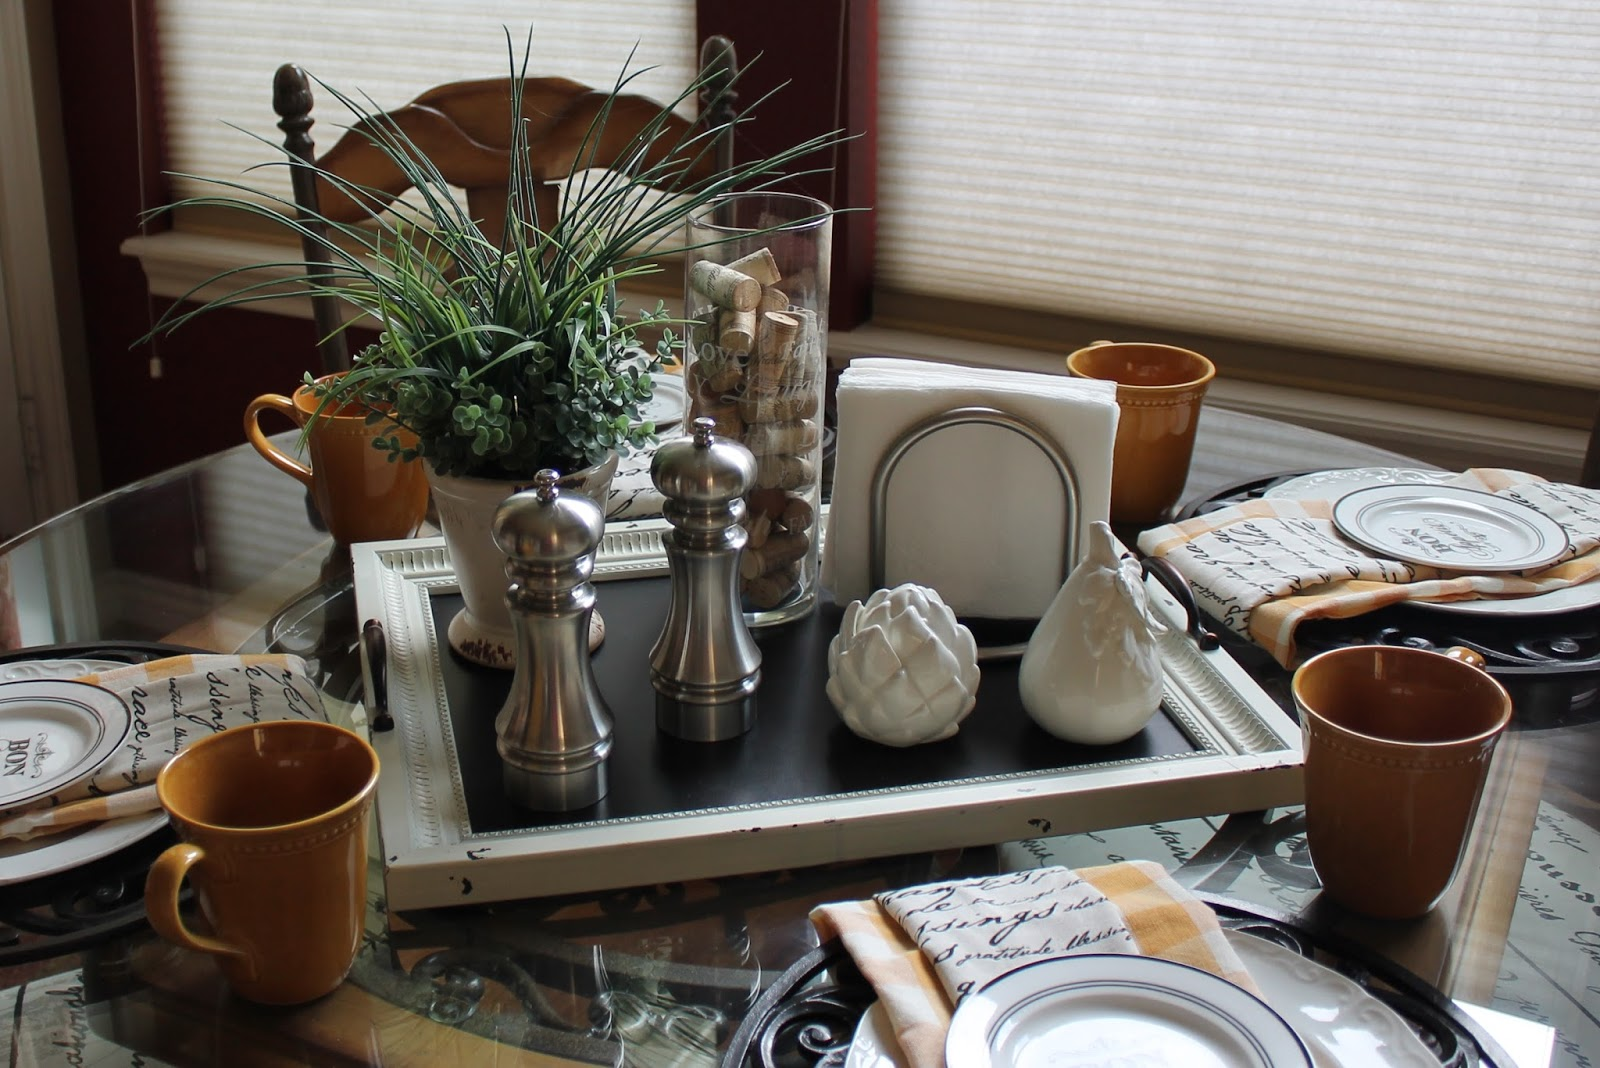 Everyday Dining Table Centerpiece